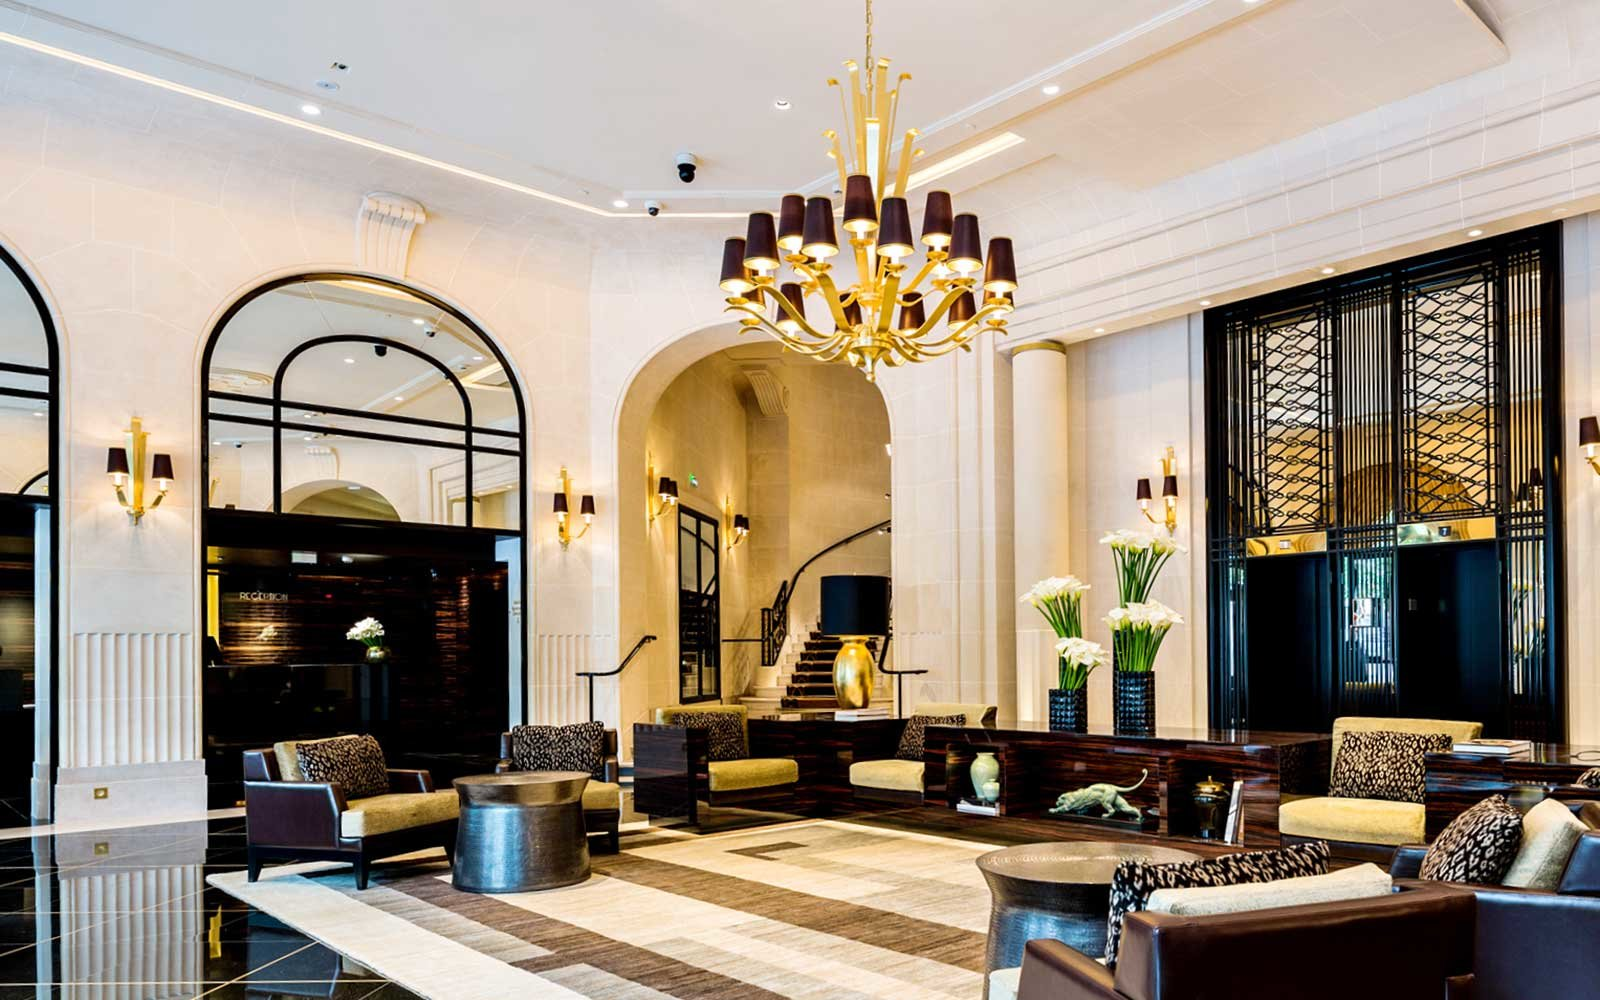 8. Prince de Galles, a Luxury Collection Hotel